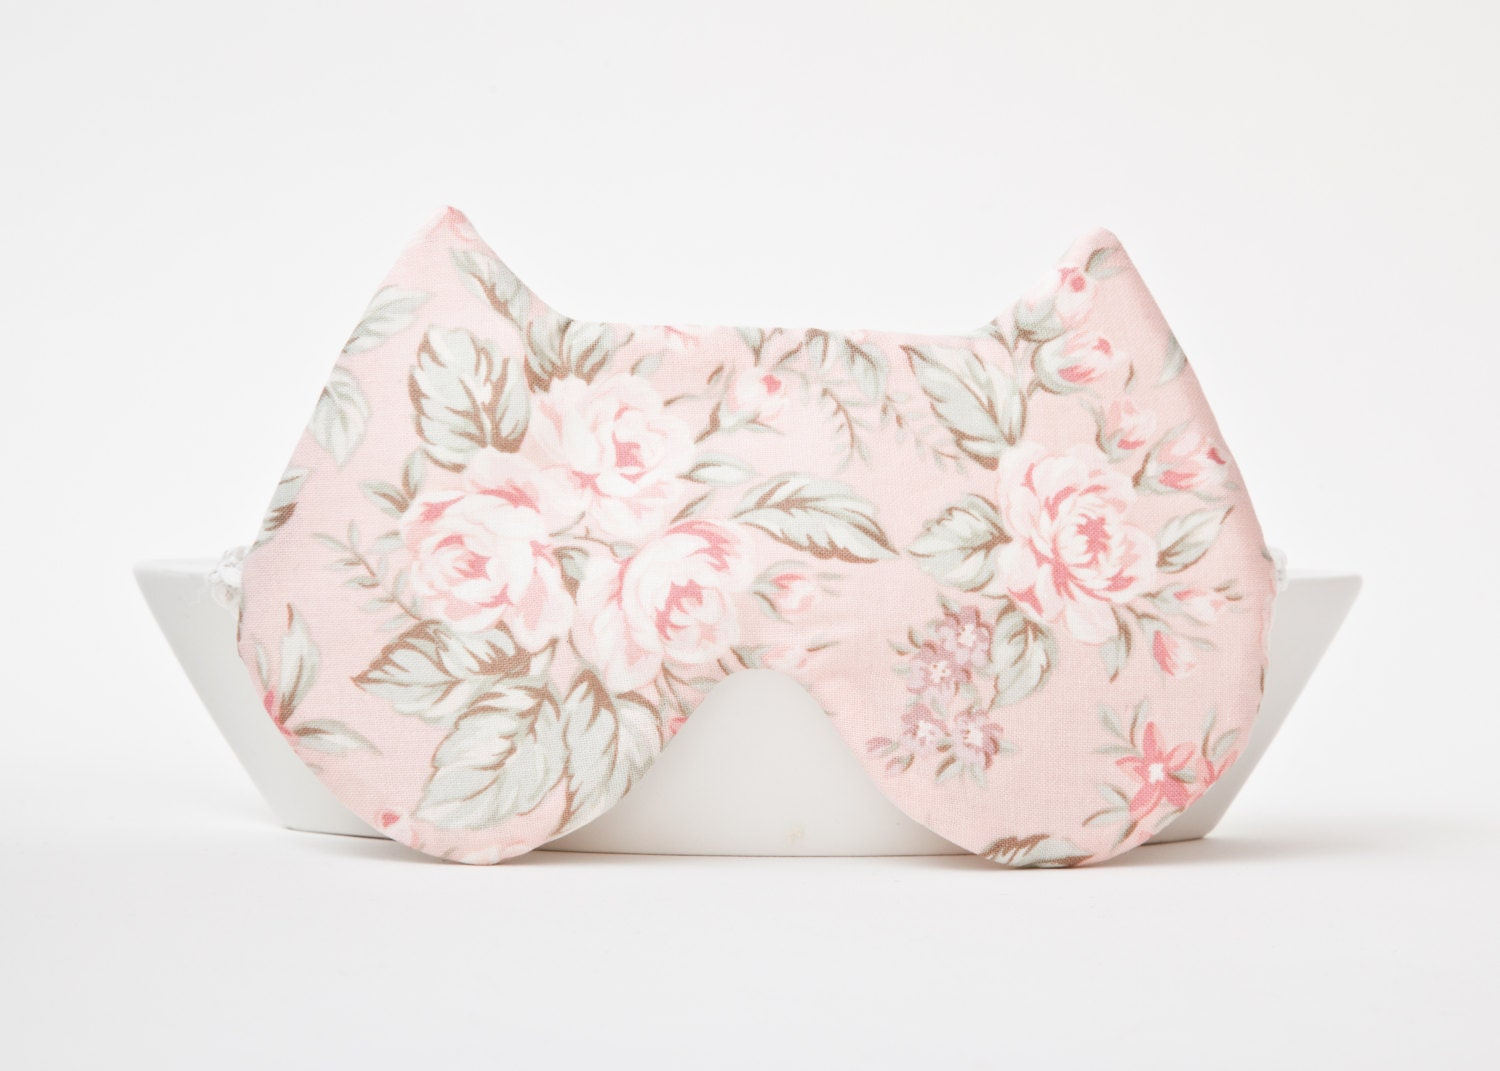 Sleep Mask Cat, Floral pattern - JuliaWine